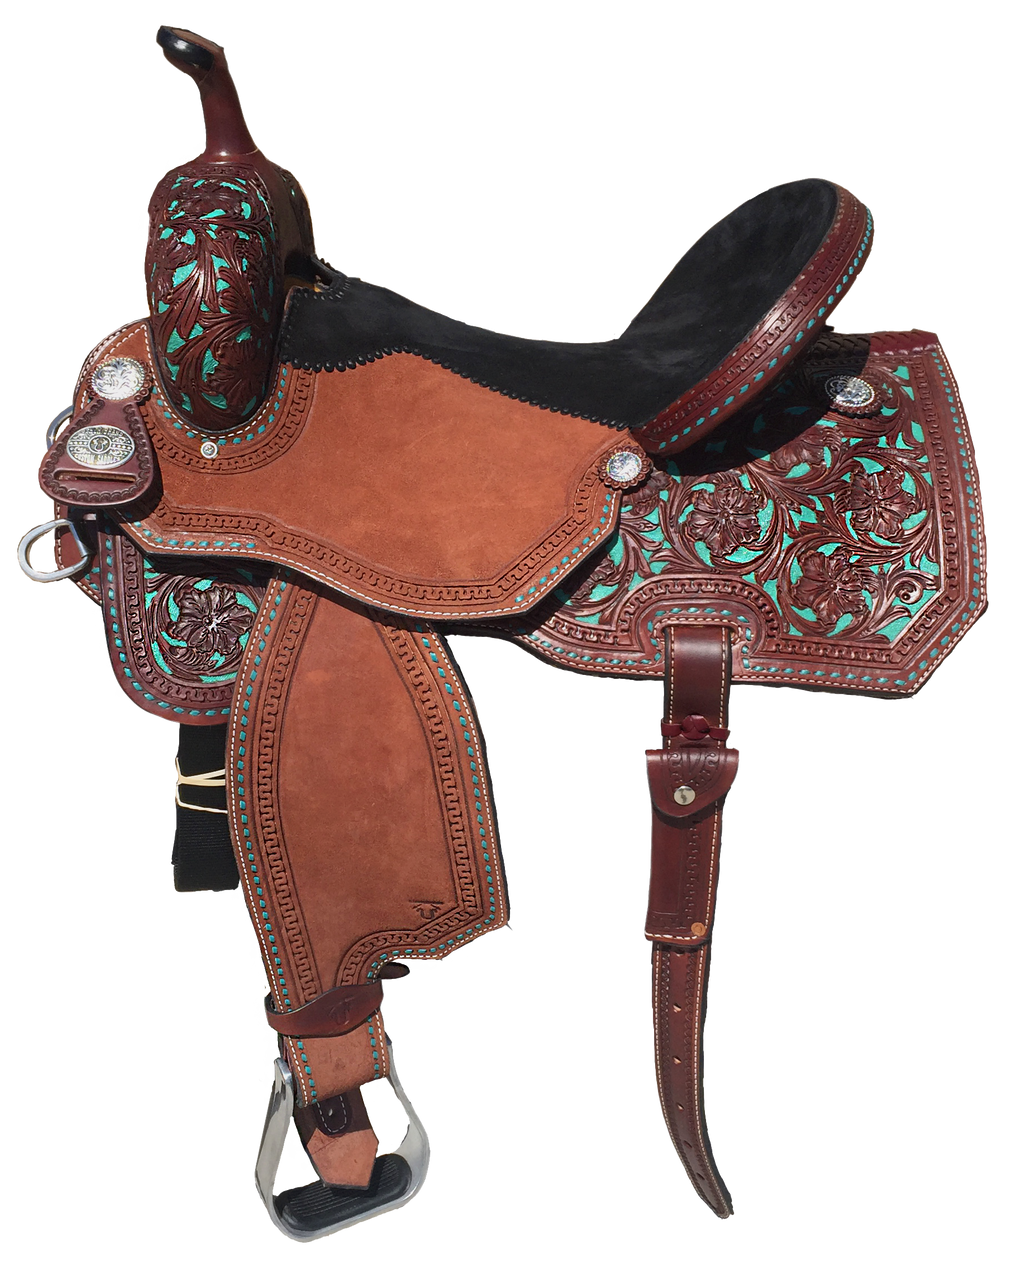 Barrel Saddle UBBR-022